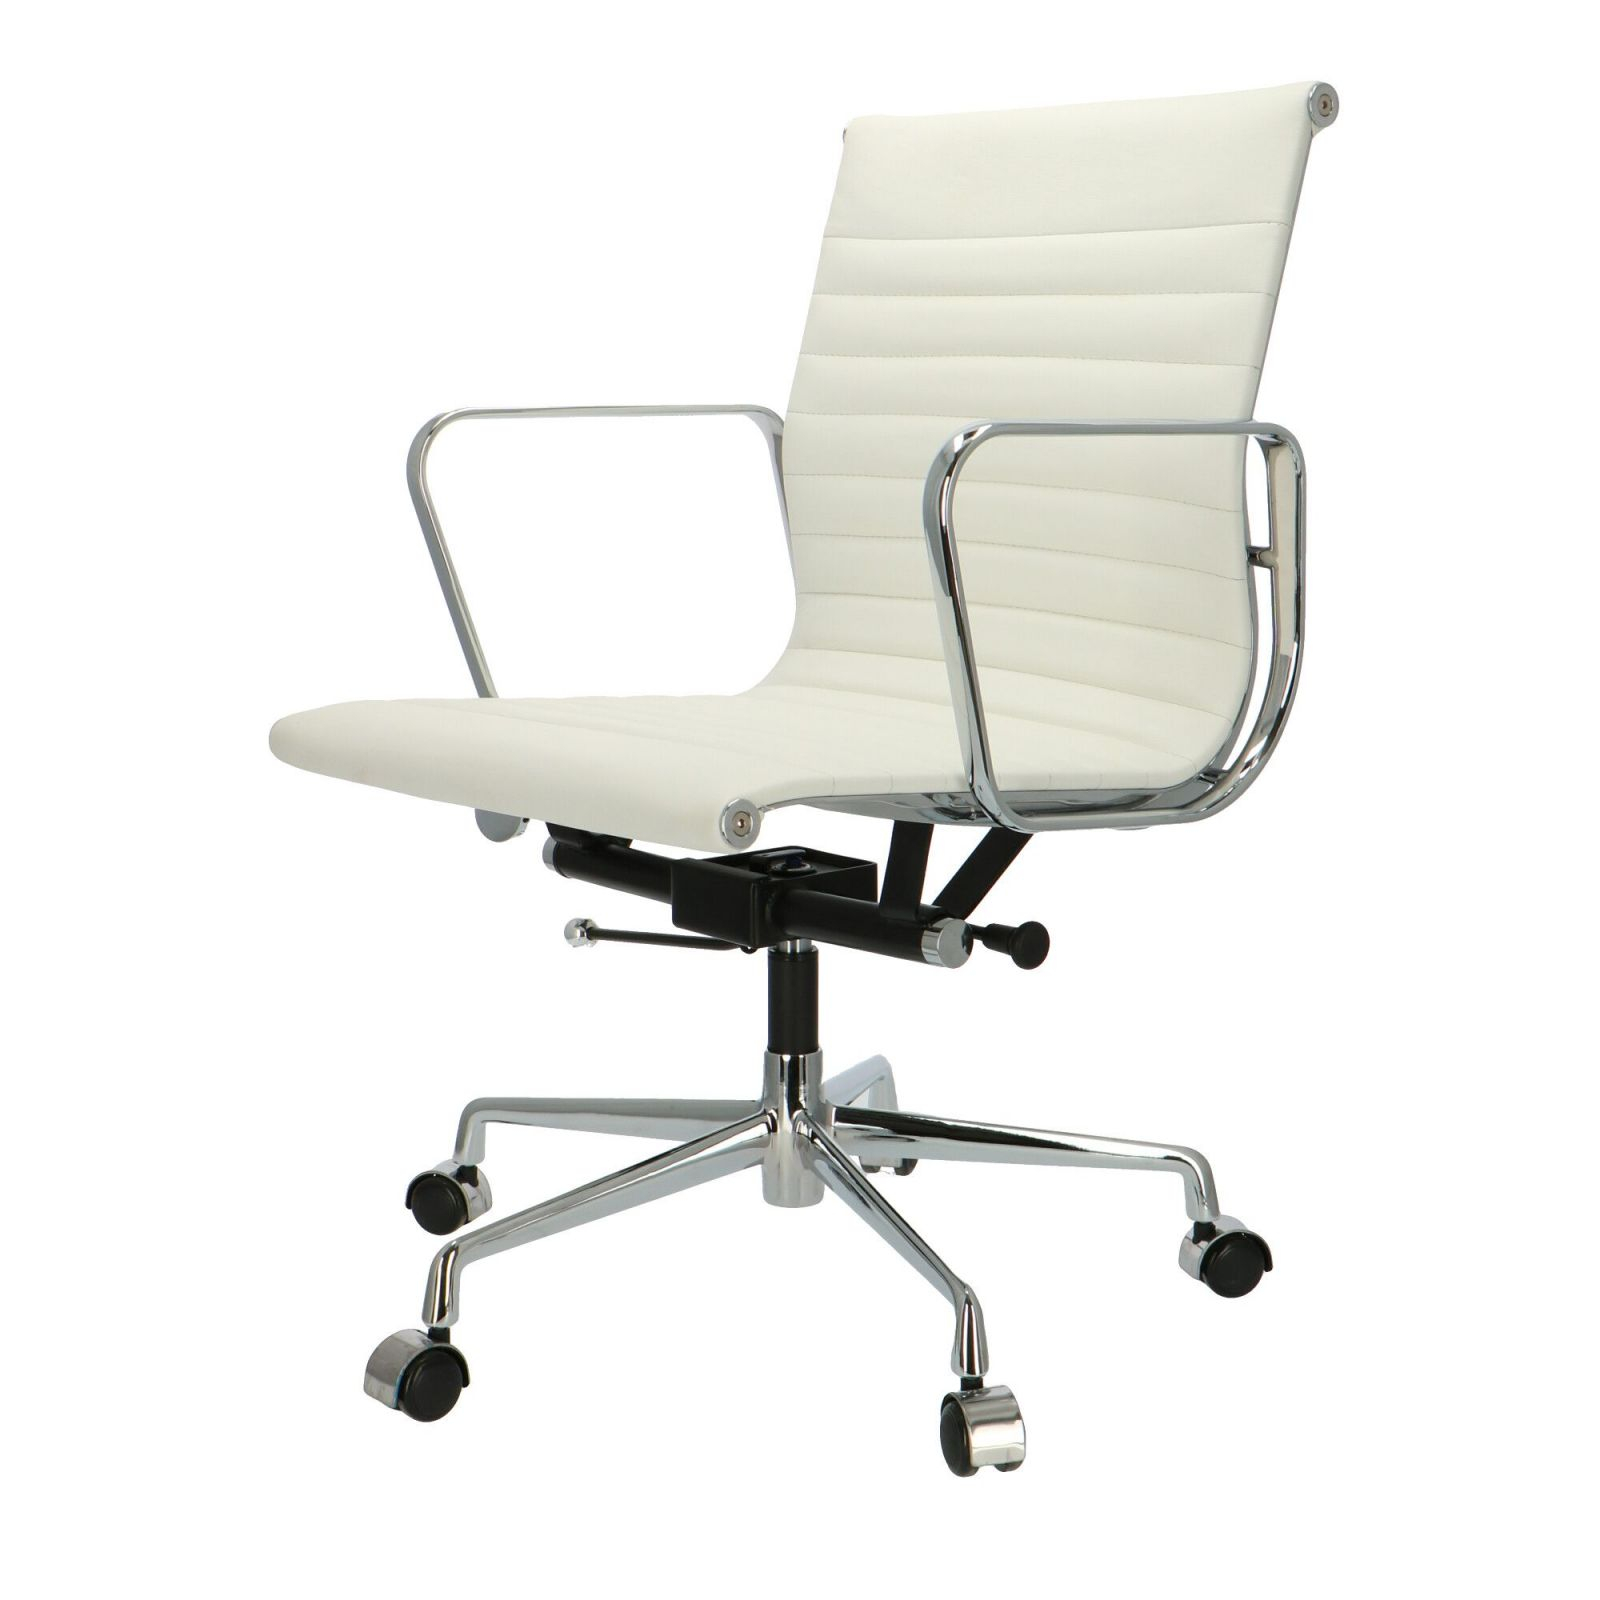 Classy Office Chair 117 White Leather | Furny inside Elegant White Leather Office Chair